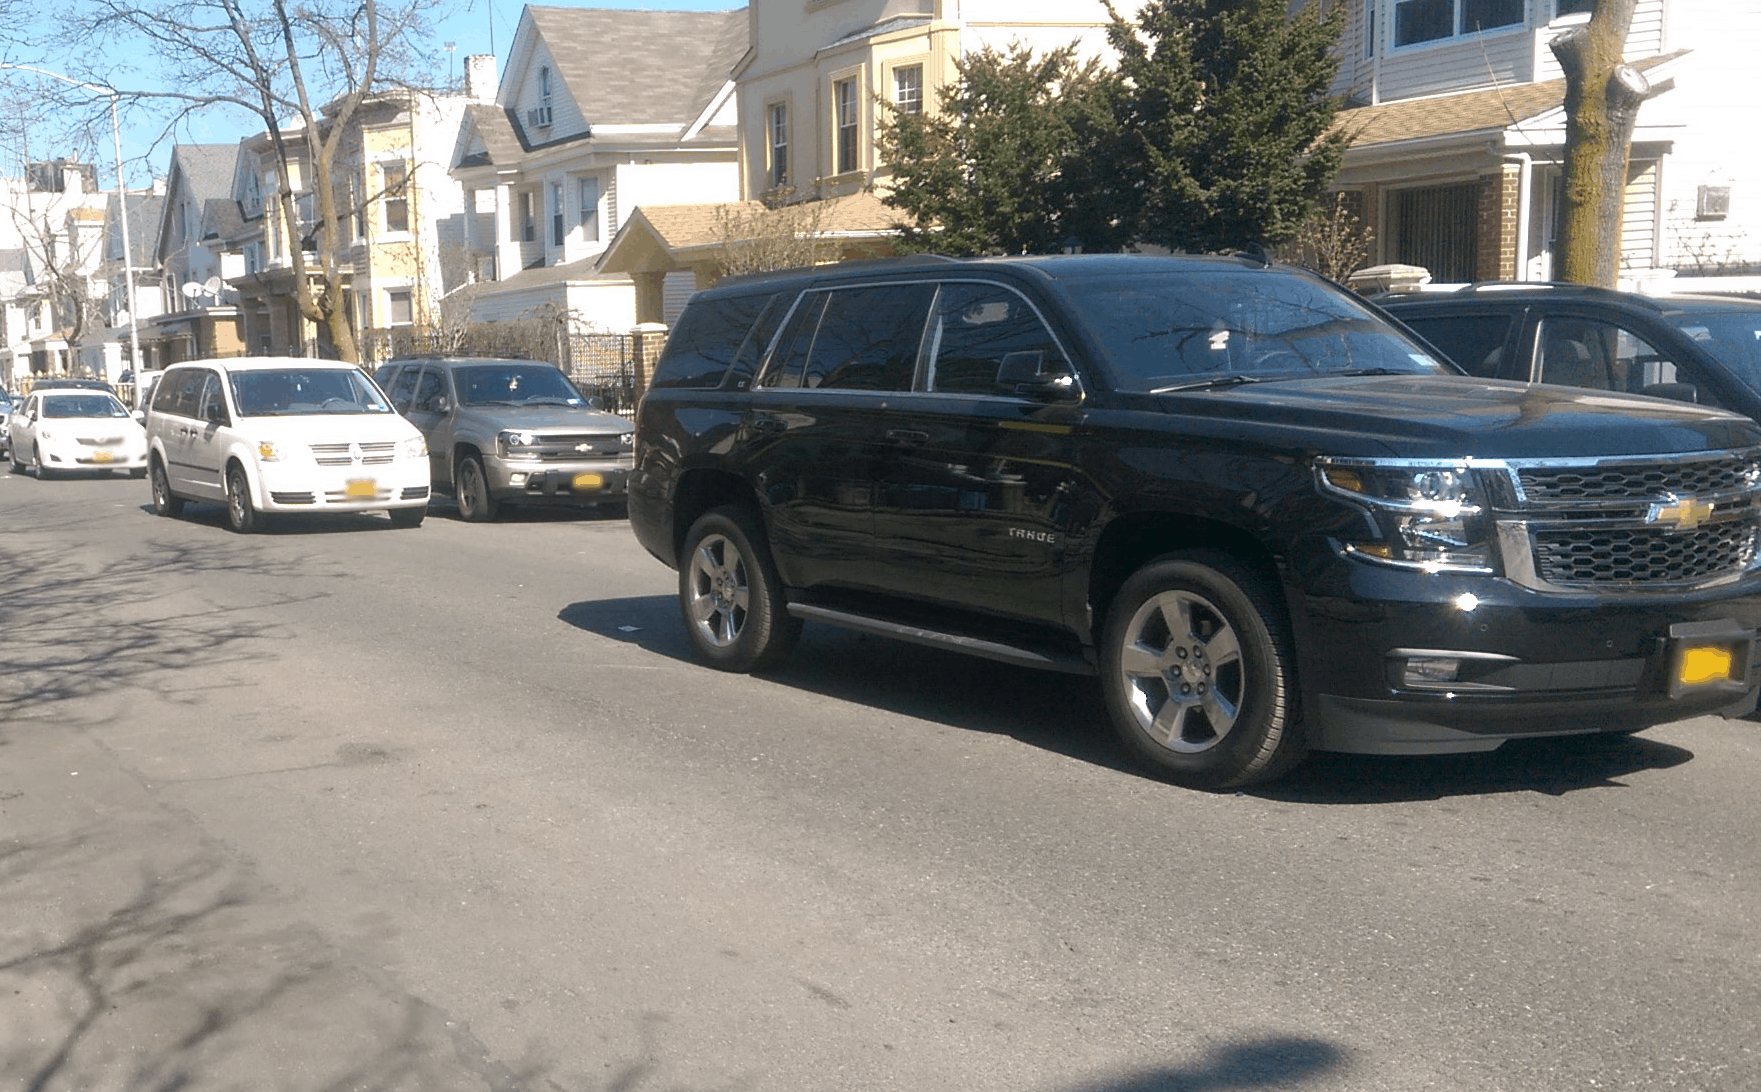 Can I Double Park During Street Cleaning?